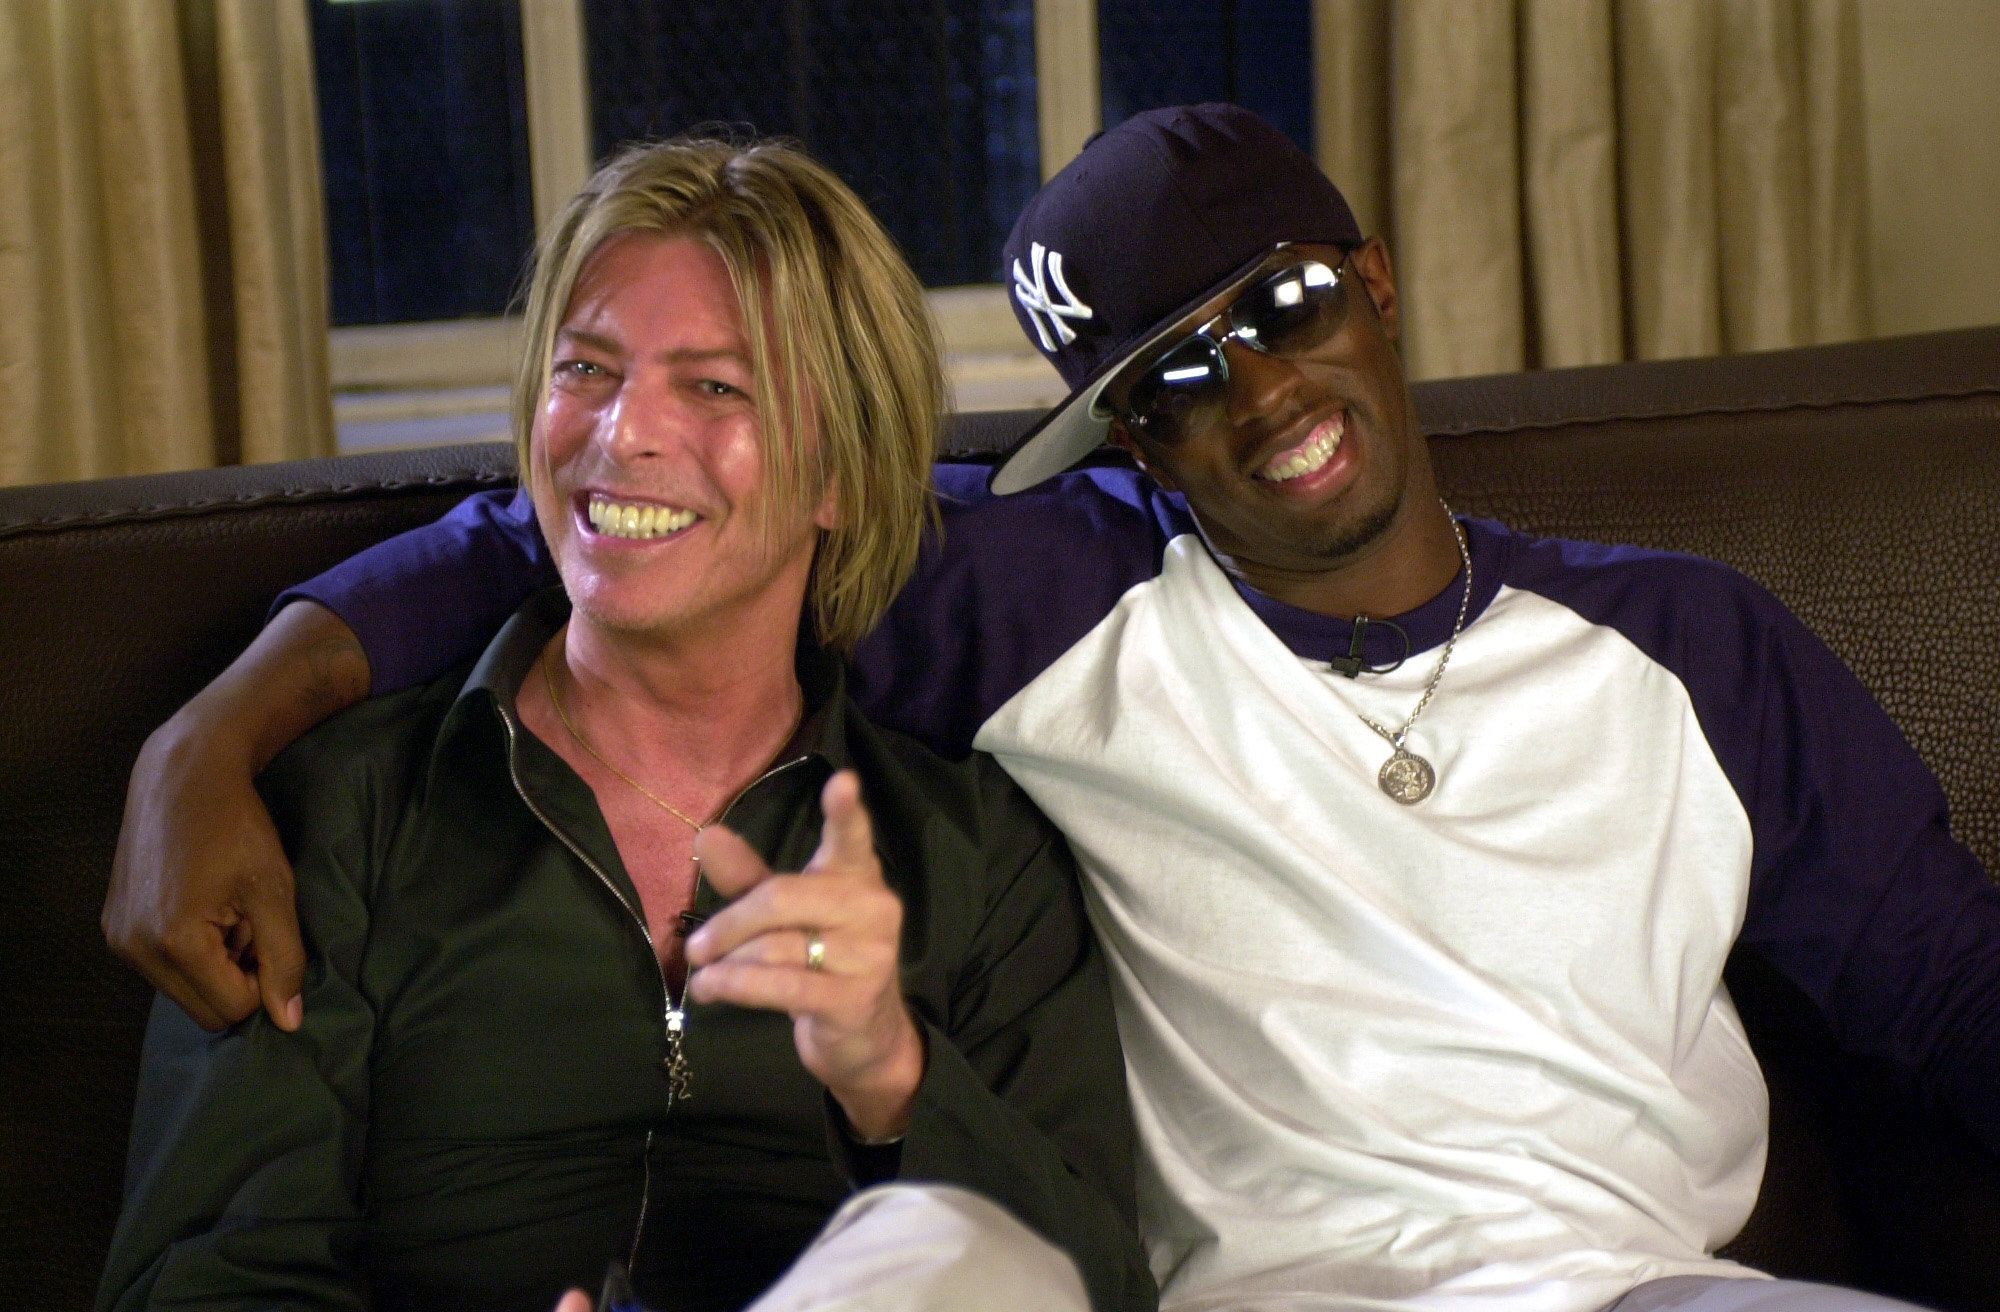 David Bowie and Sean 'P. Diddy' Combs collaborated on the movie soundtrack 'Training Day' due in stores on September 11th. (Photo by KMazur/WireImage)